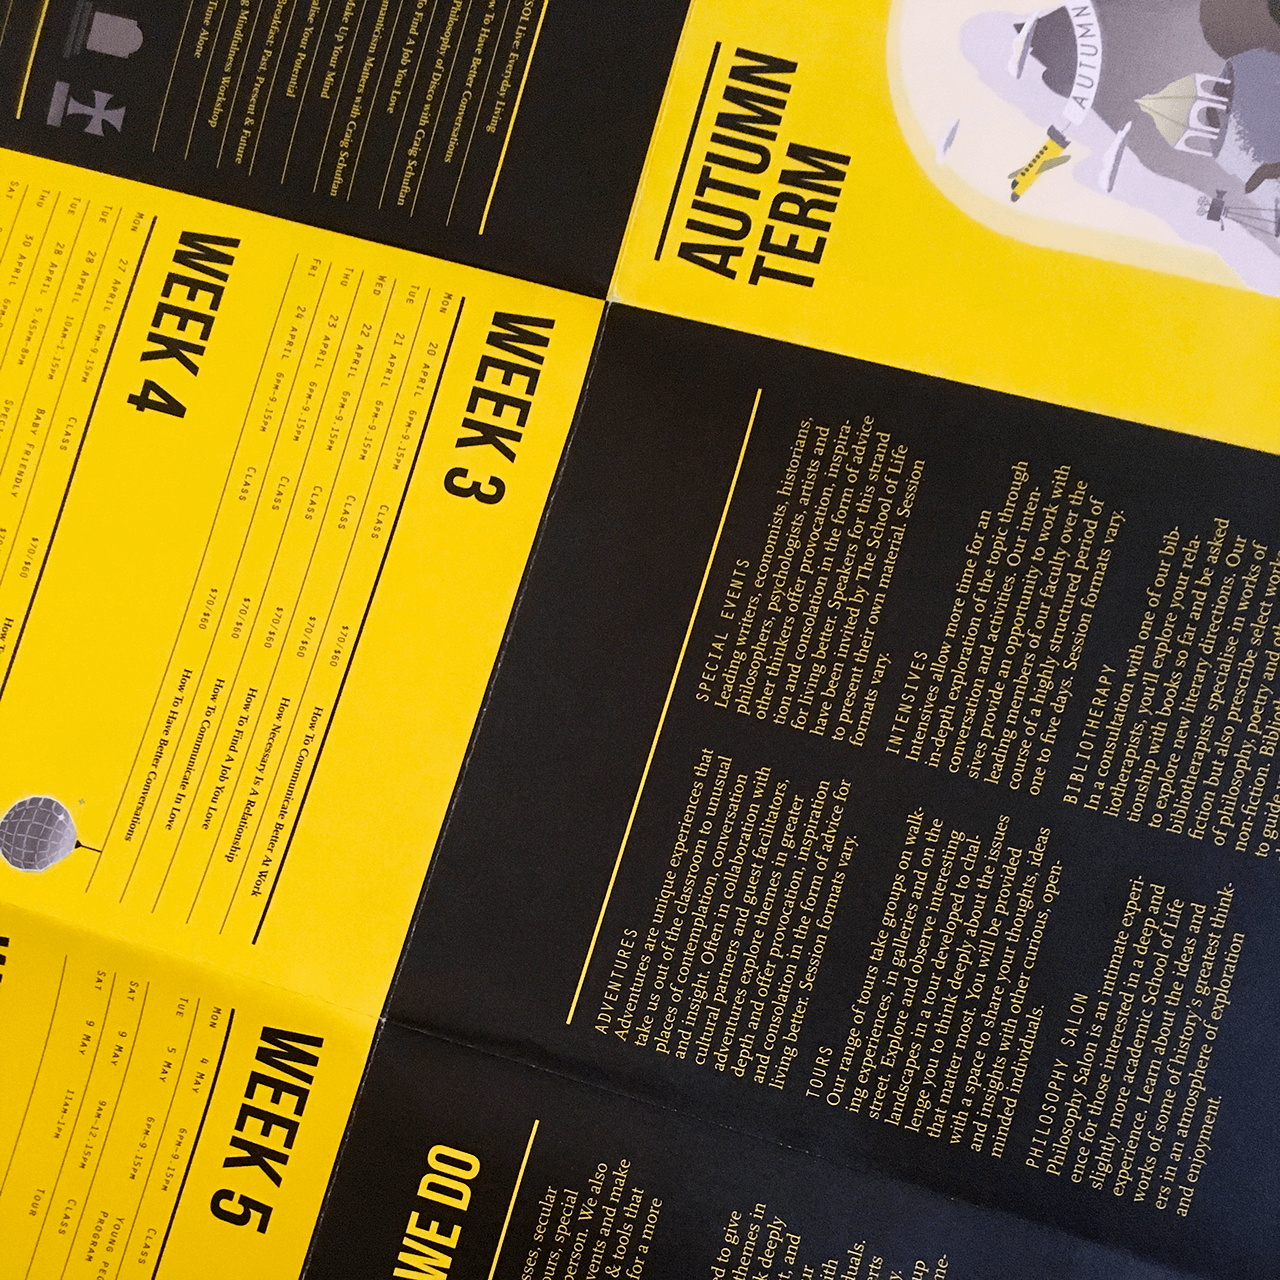 Graphic design for the autumn term program of The School of Life